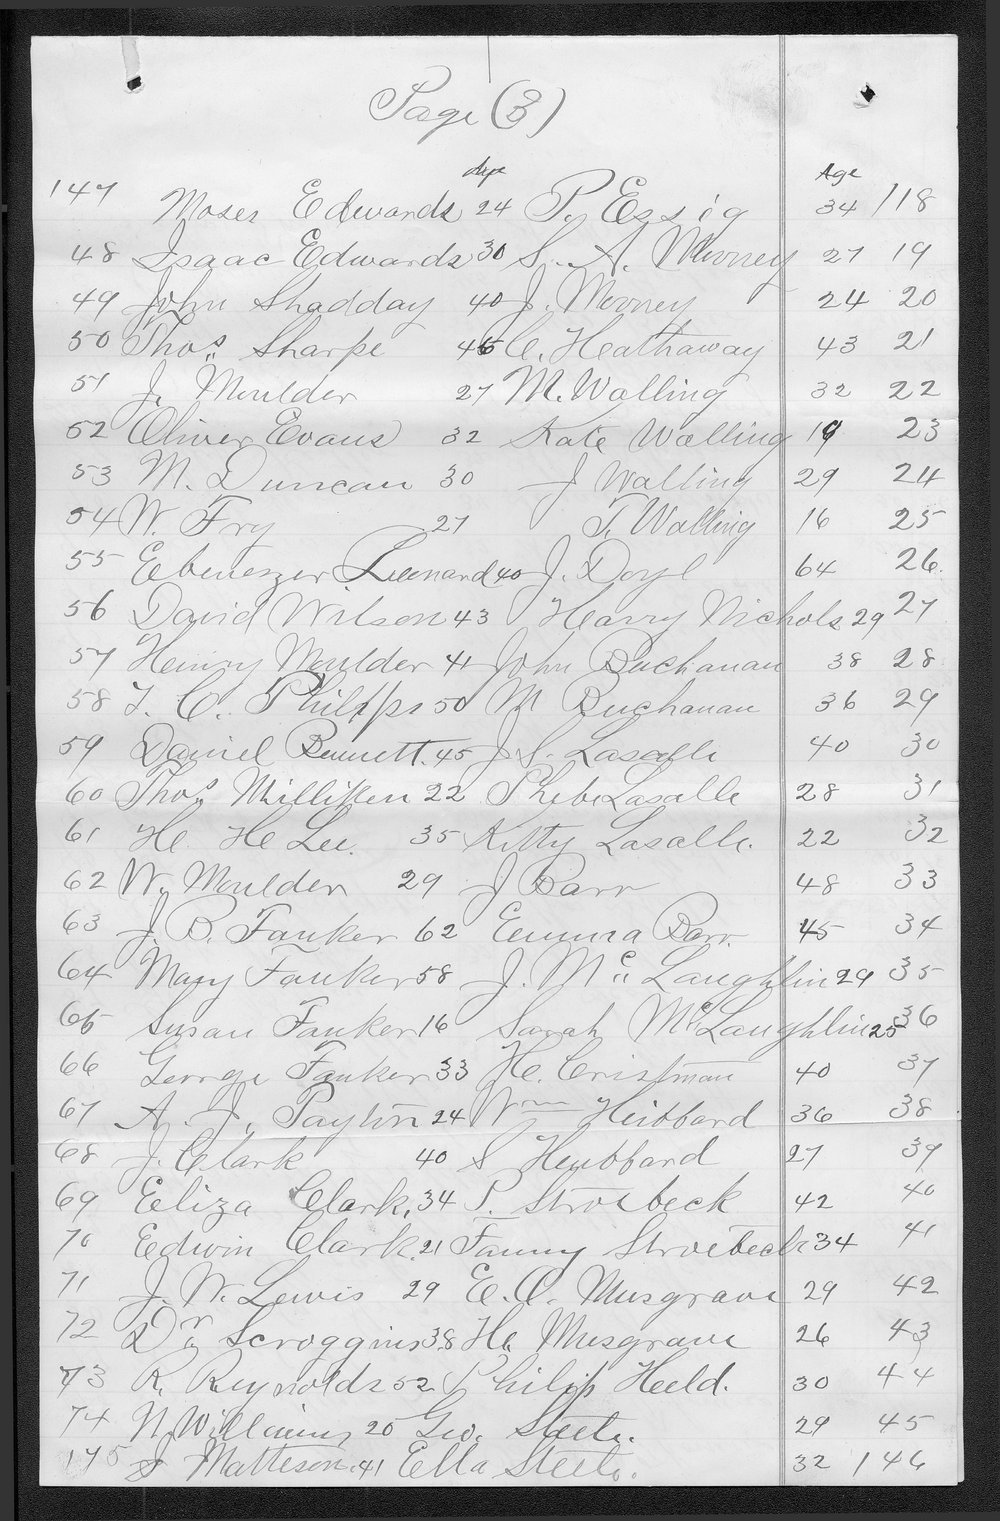 Barber county organization records - 8